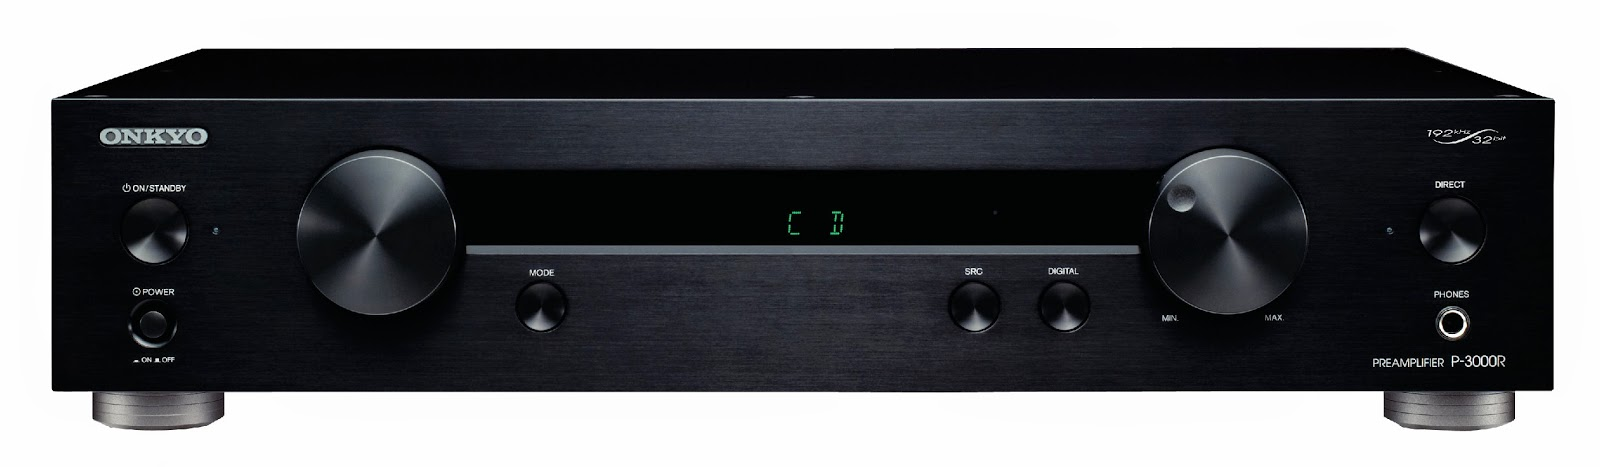 audiophile musings onkyo p 3000r preamp review rh audiophile musings blogspot com Stereo Systems Onkyo Preamplifier